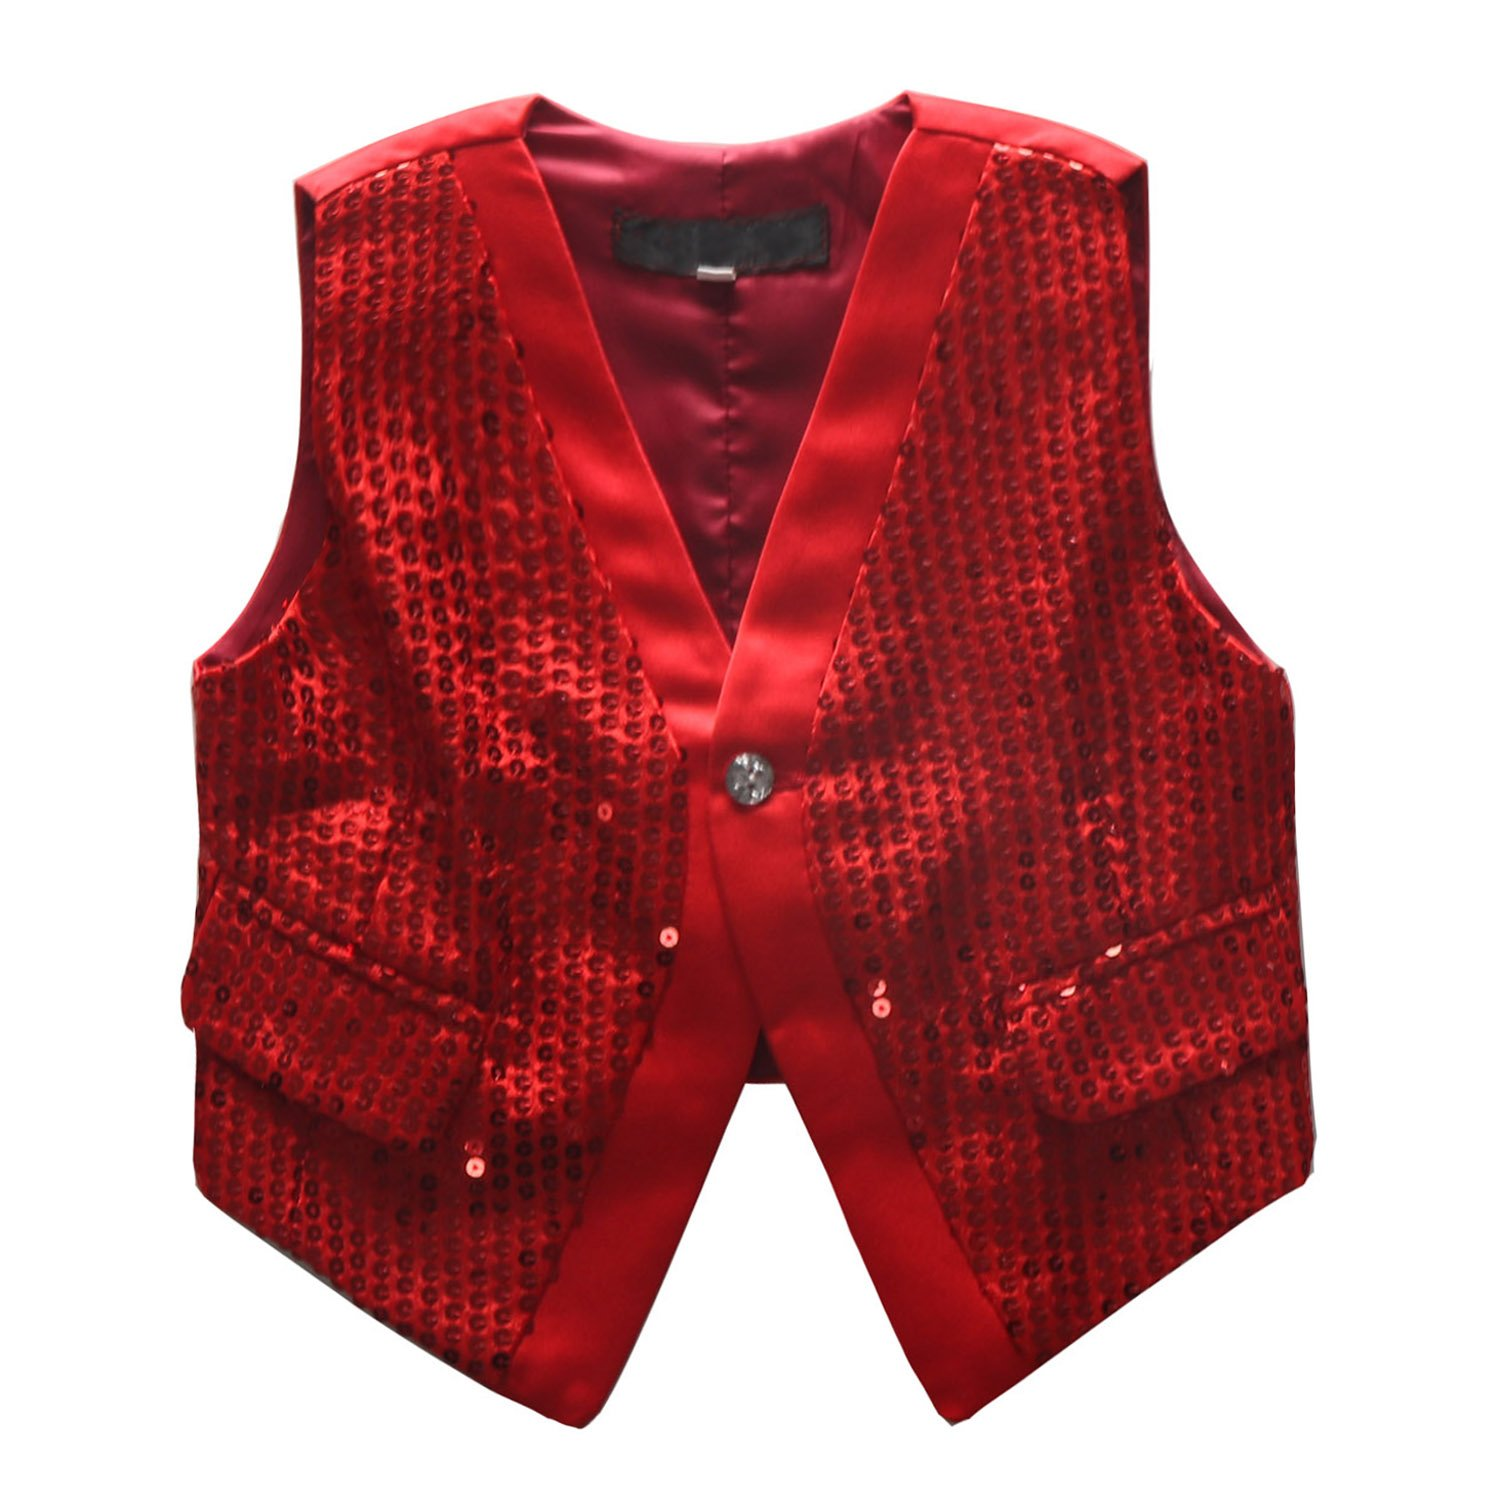 Coodebear Boys' Girls' Lined False Pockets Buttons V Collar Stage Performance Sequins Vests